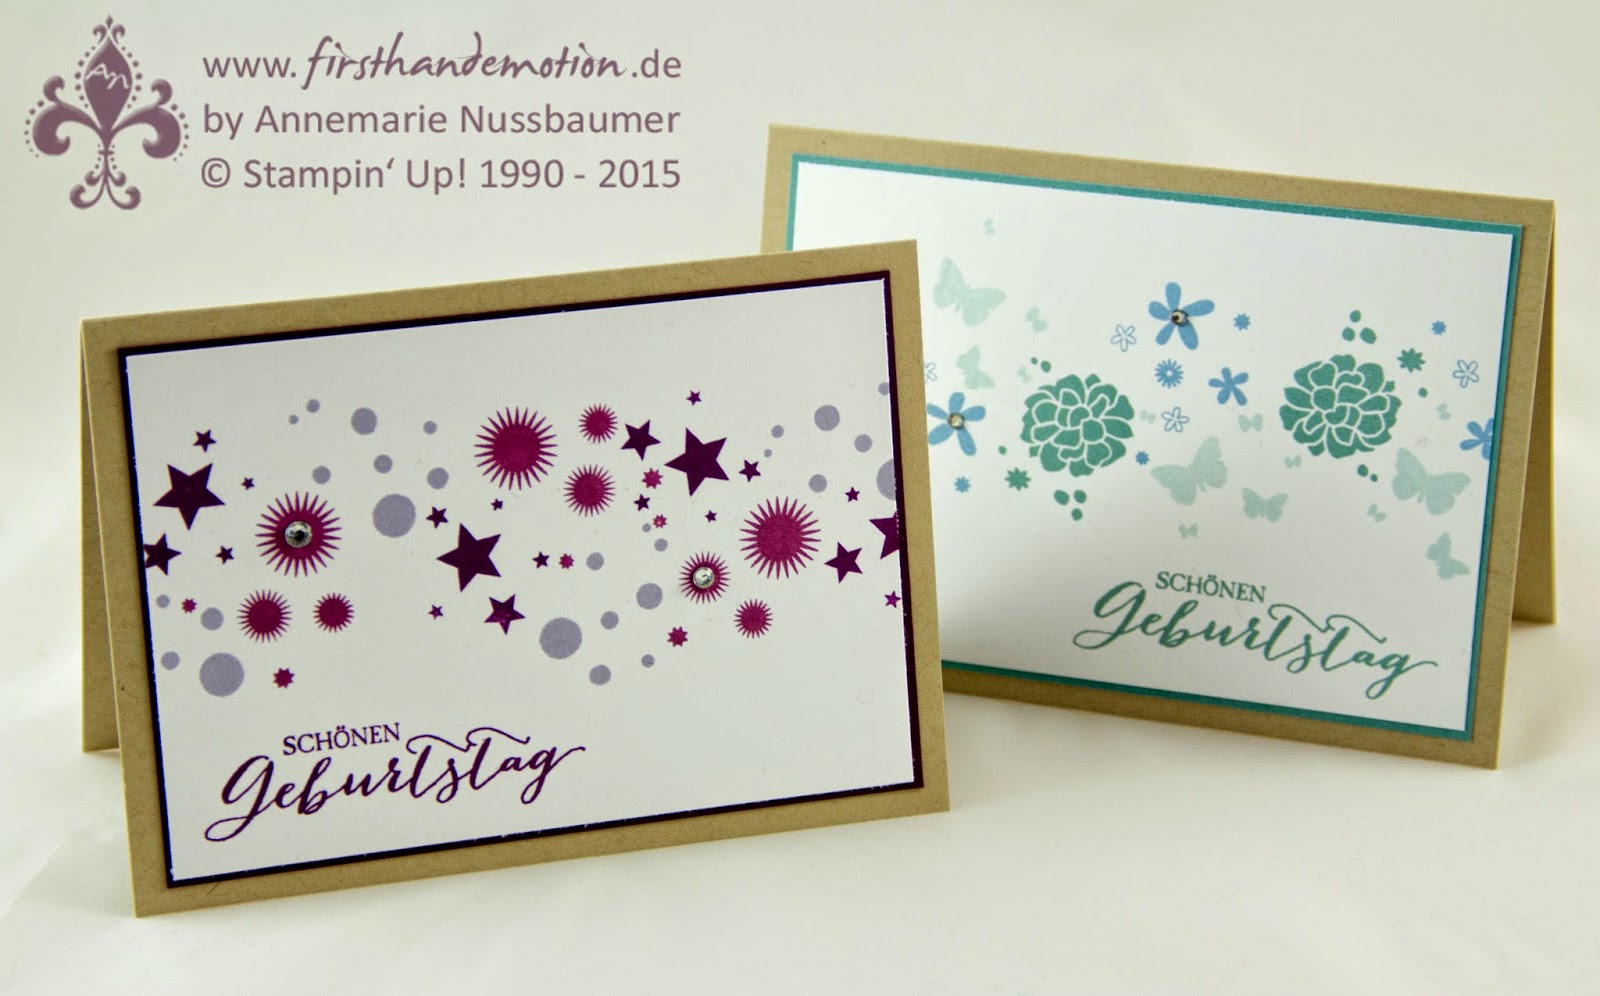 Perpetual Calendar Stamp : First hand emotion perpetual birthday karte und letzter